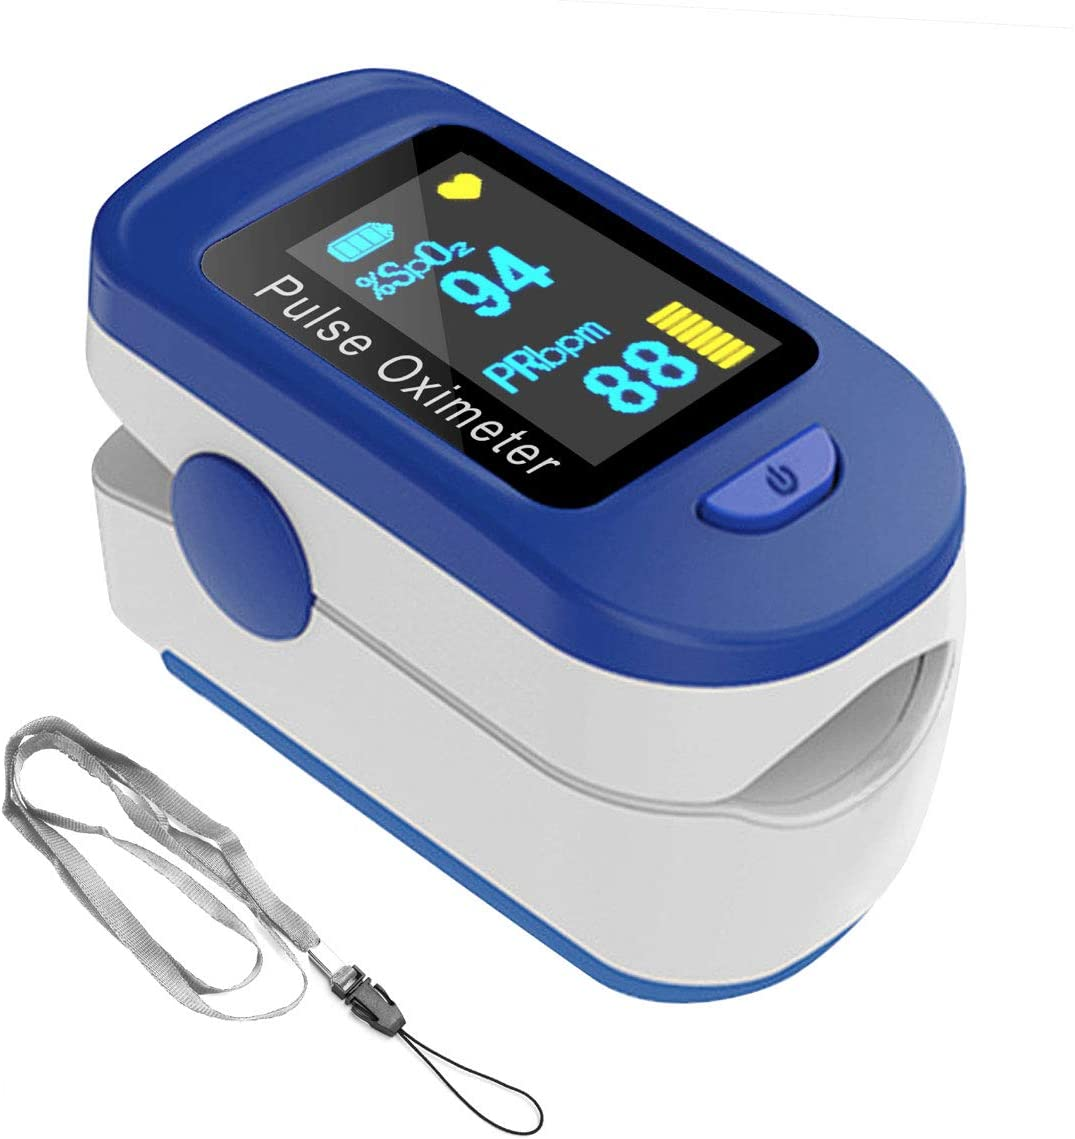 Finger Oxygen Saturation Monitor and Heart Rate Monitors with Lanyard for Sports or Aviation Use Only (Non-Medical use)